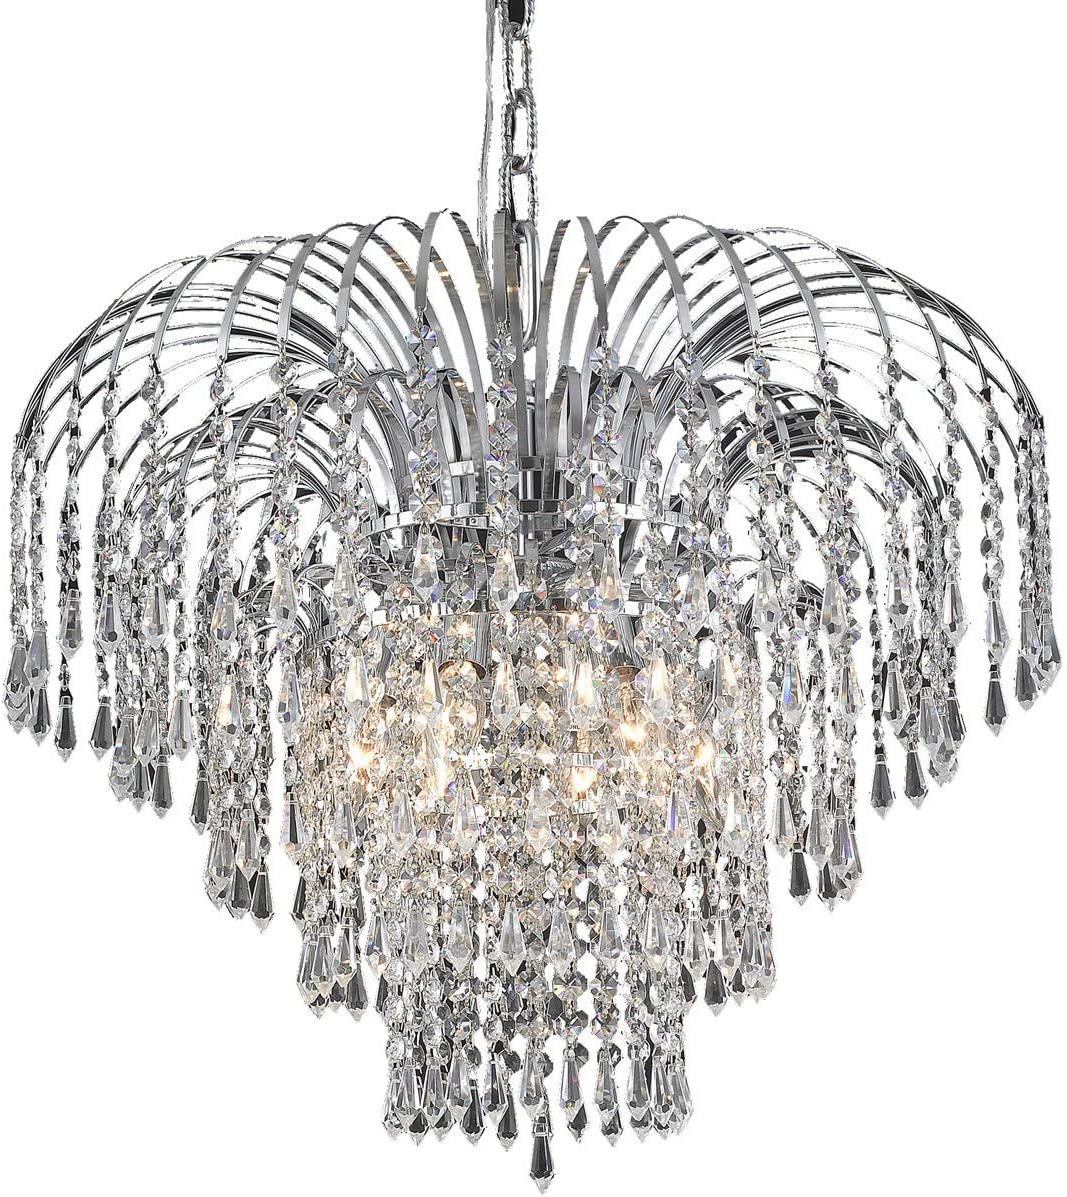 Elegant Lighting 6801D21C RC Royal Cut Clear Crystal Falls 6-Light, Four-Tier Crystal Chandelier, 21 x 18 , Chrome Finish